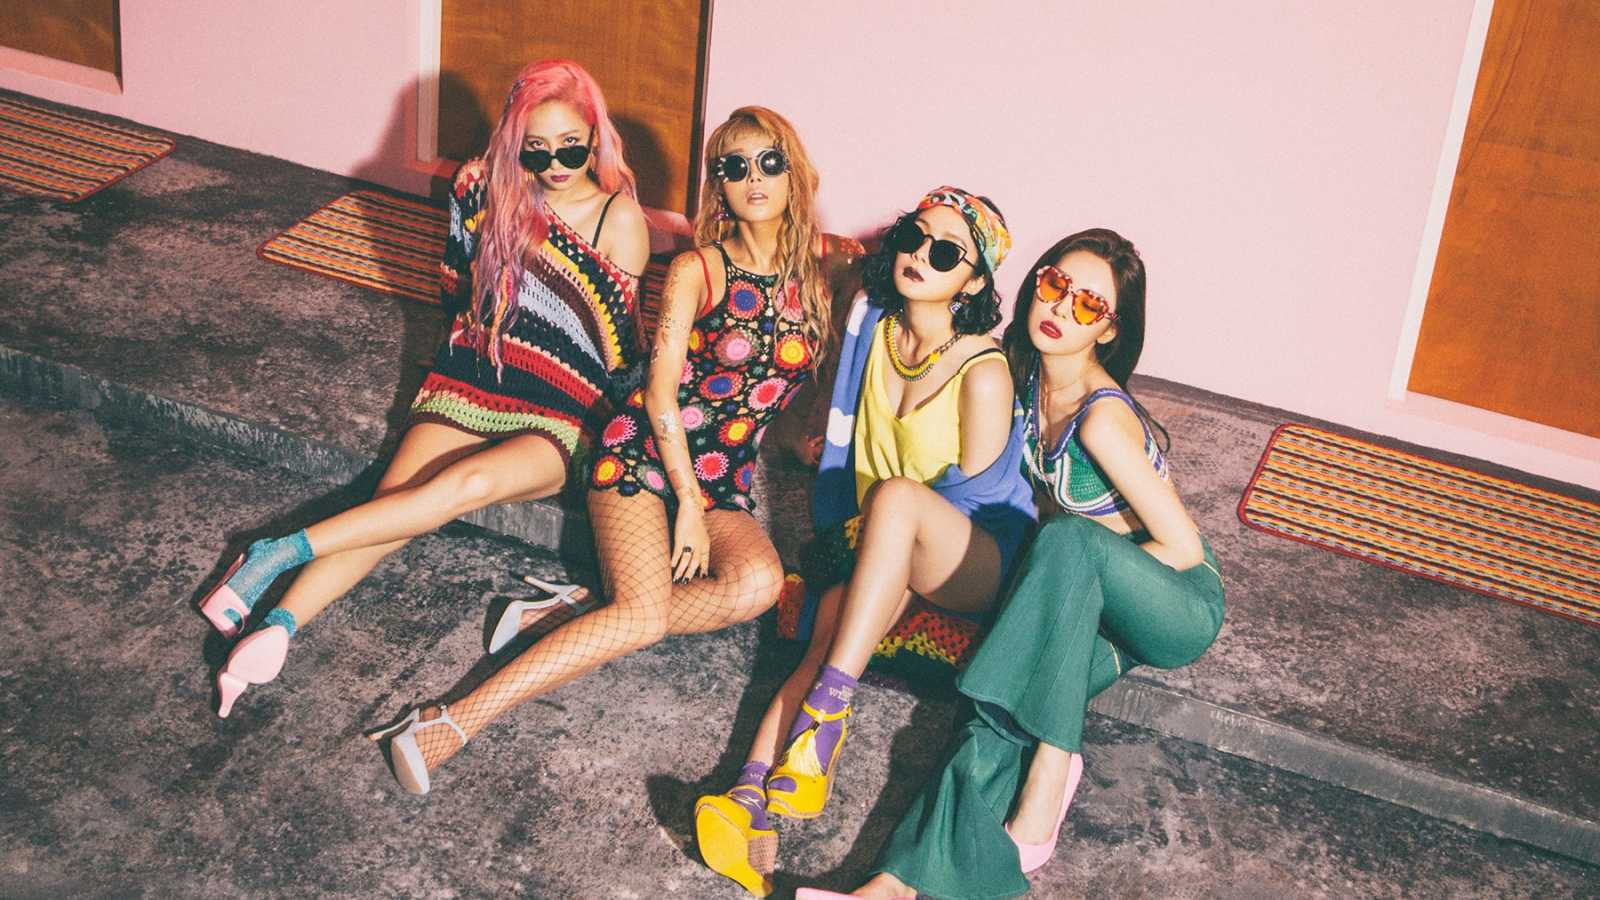 Wonder Girls © JYP Entertainment. All rights reserved